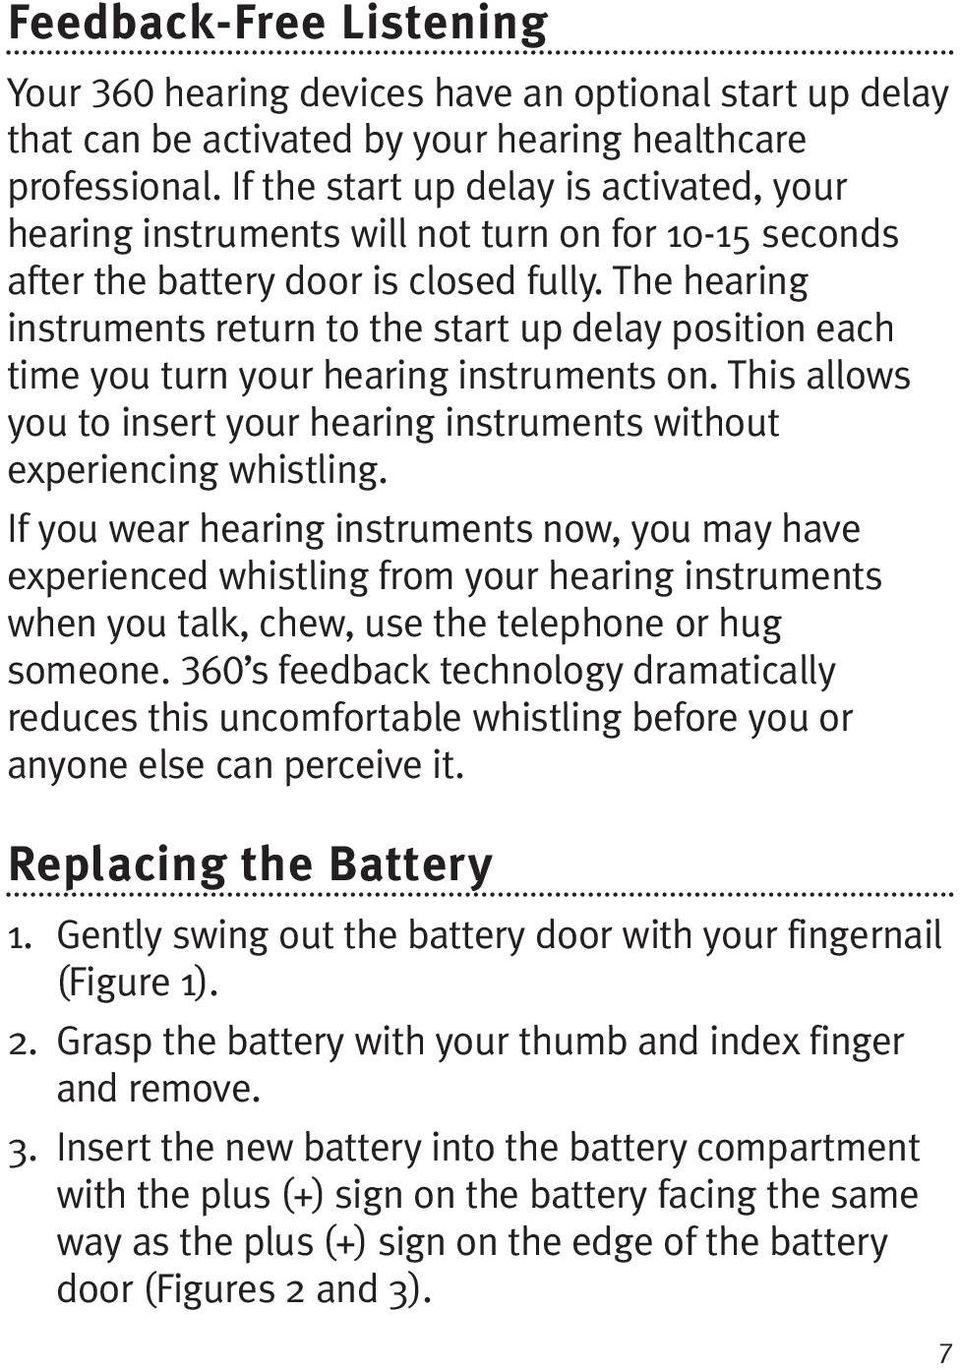 The hearing instruments return to the start up delay position each time you turn your hearing instruments on. This allows you to insert your hearing instruments without experiencing whistling.